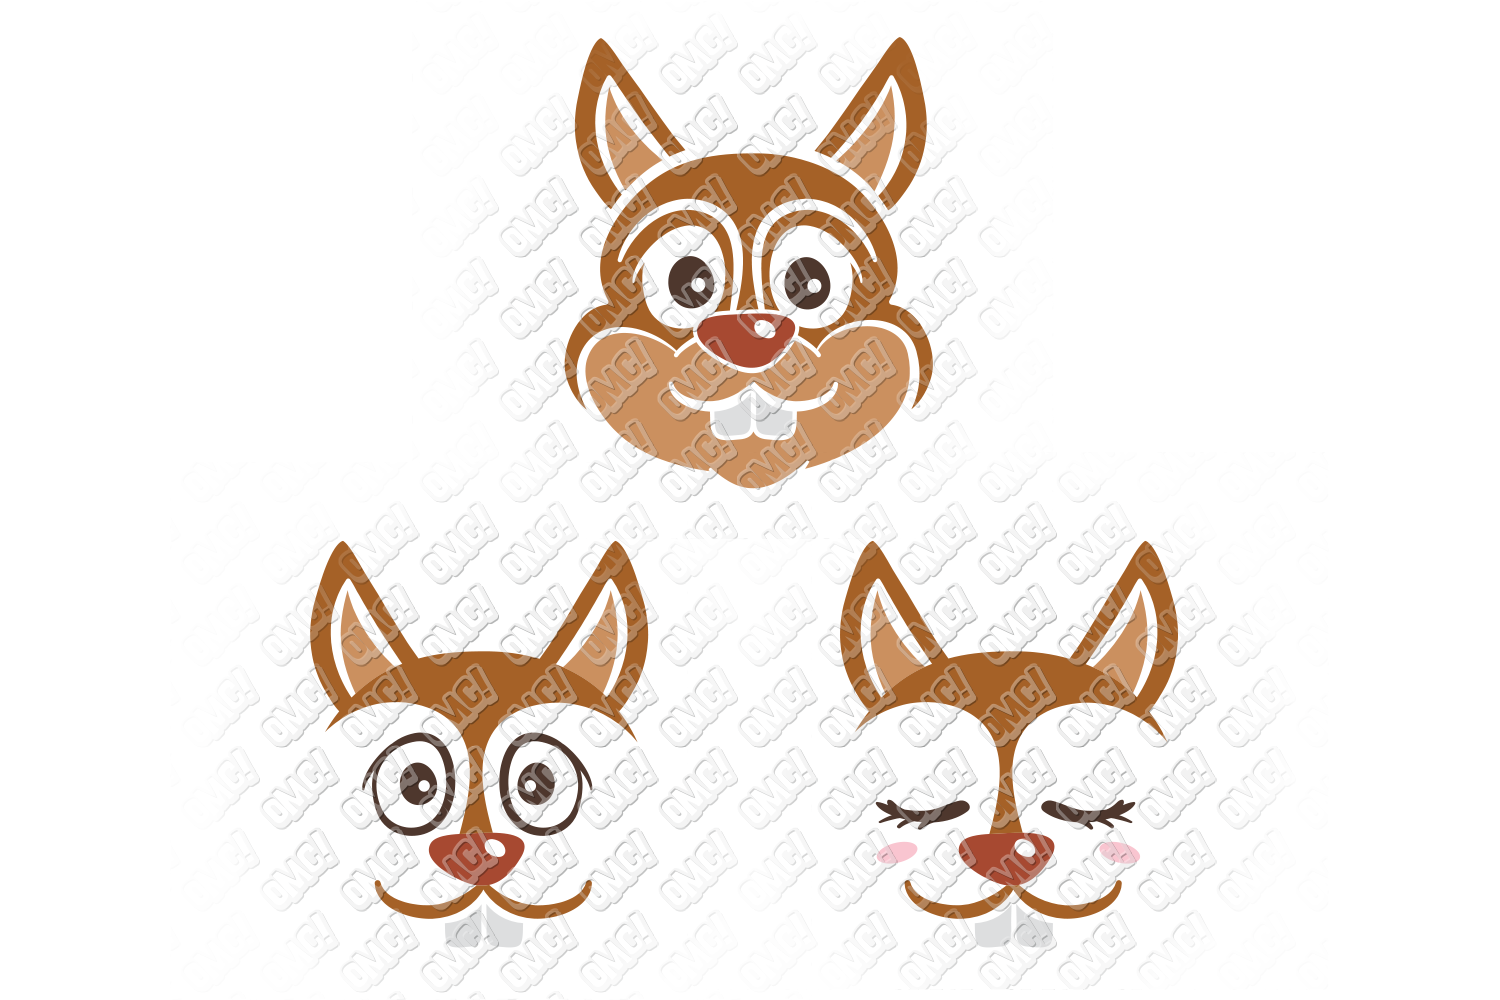 Squirrel SVG Monogram Face in SVG, DXF, PNG, EPS, JPG example image 3